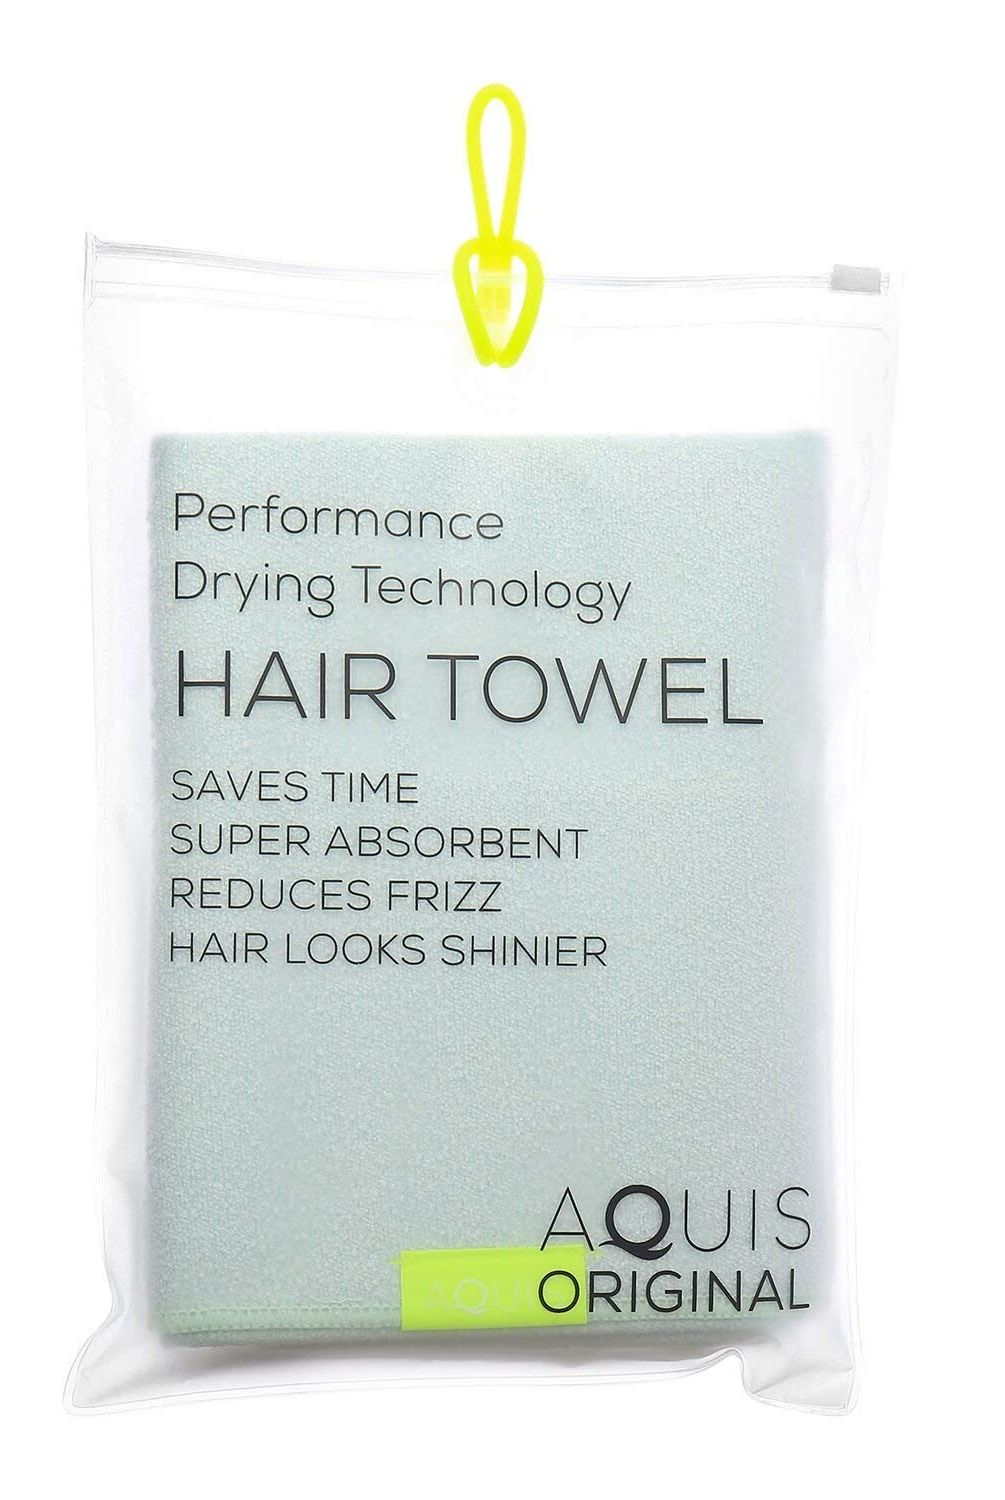 Aquis Original Hair Towel Stocking Stuffers